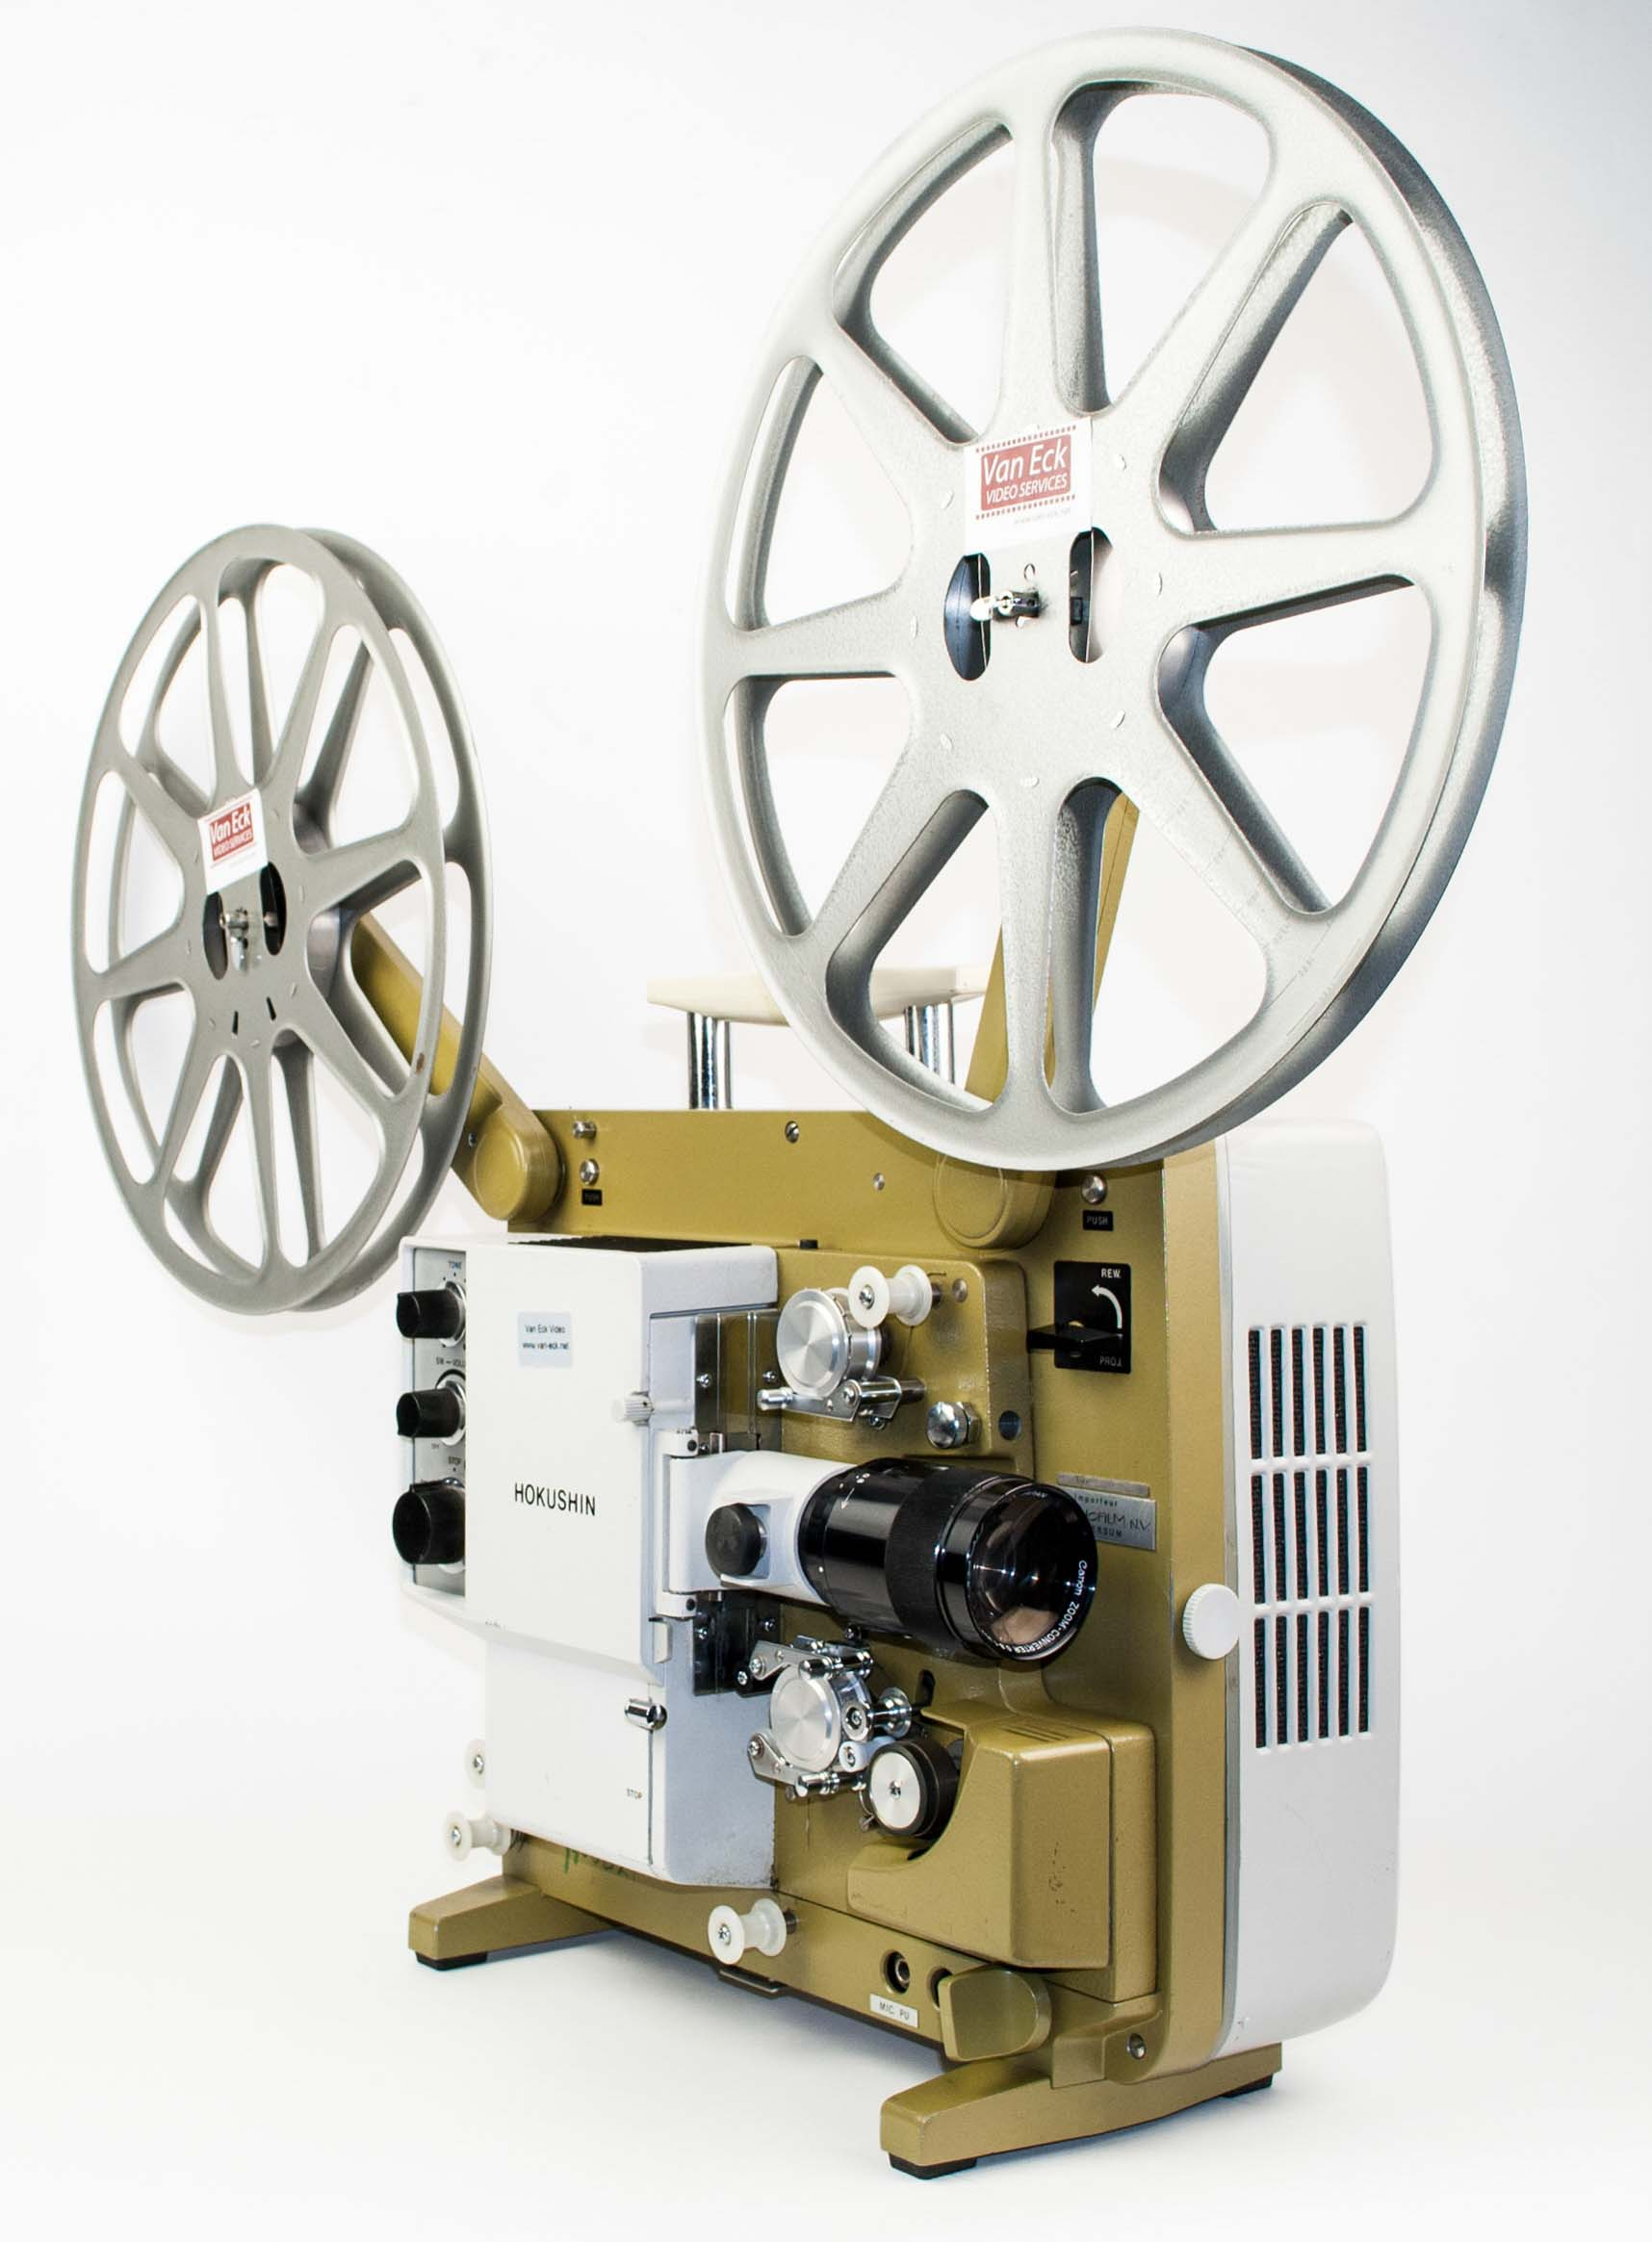 Hokushin Canary, Film Projectors - Spare Parts and Information Van